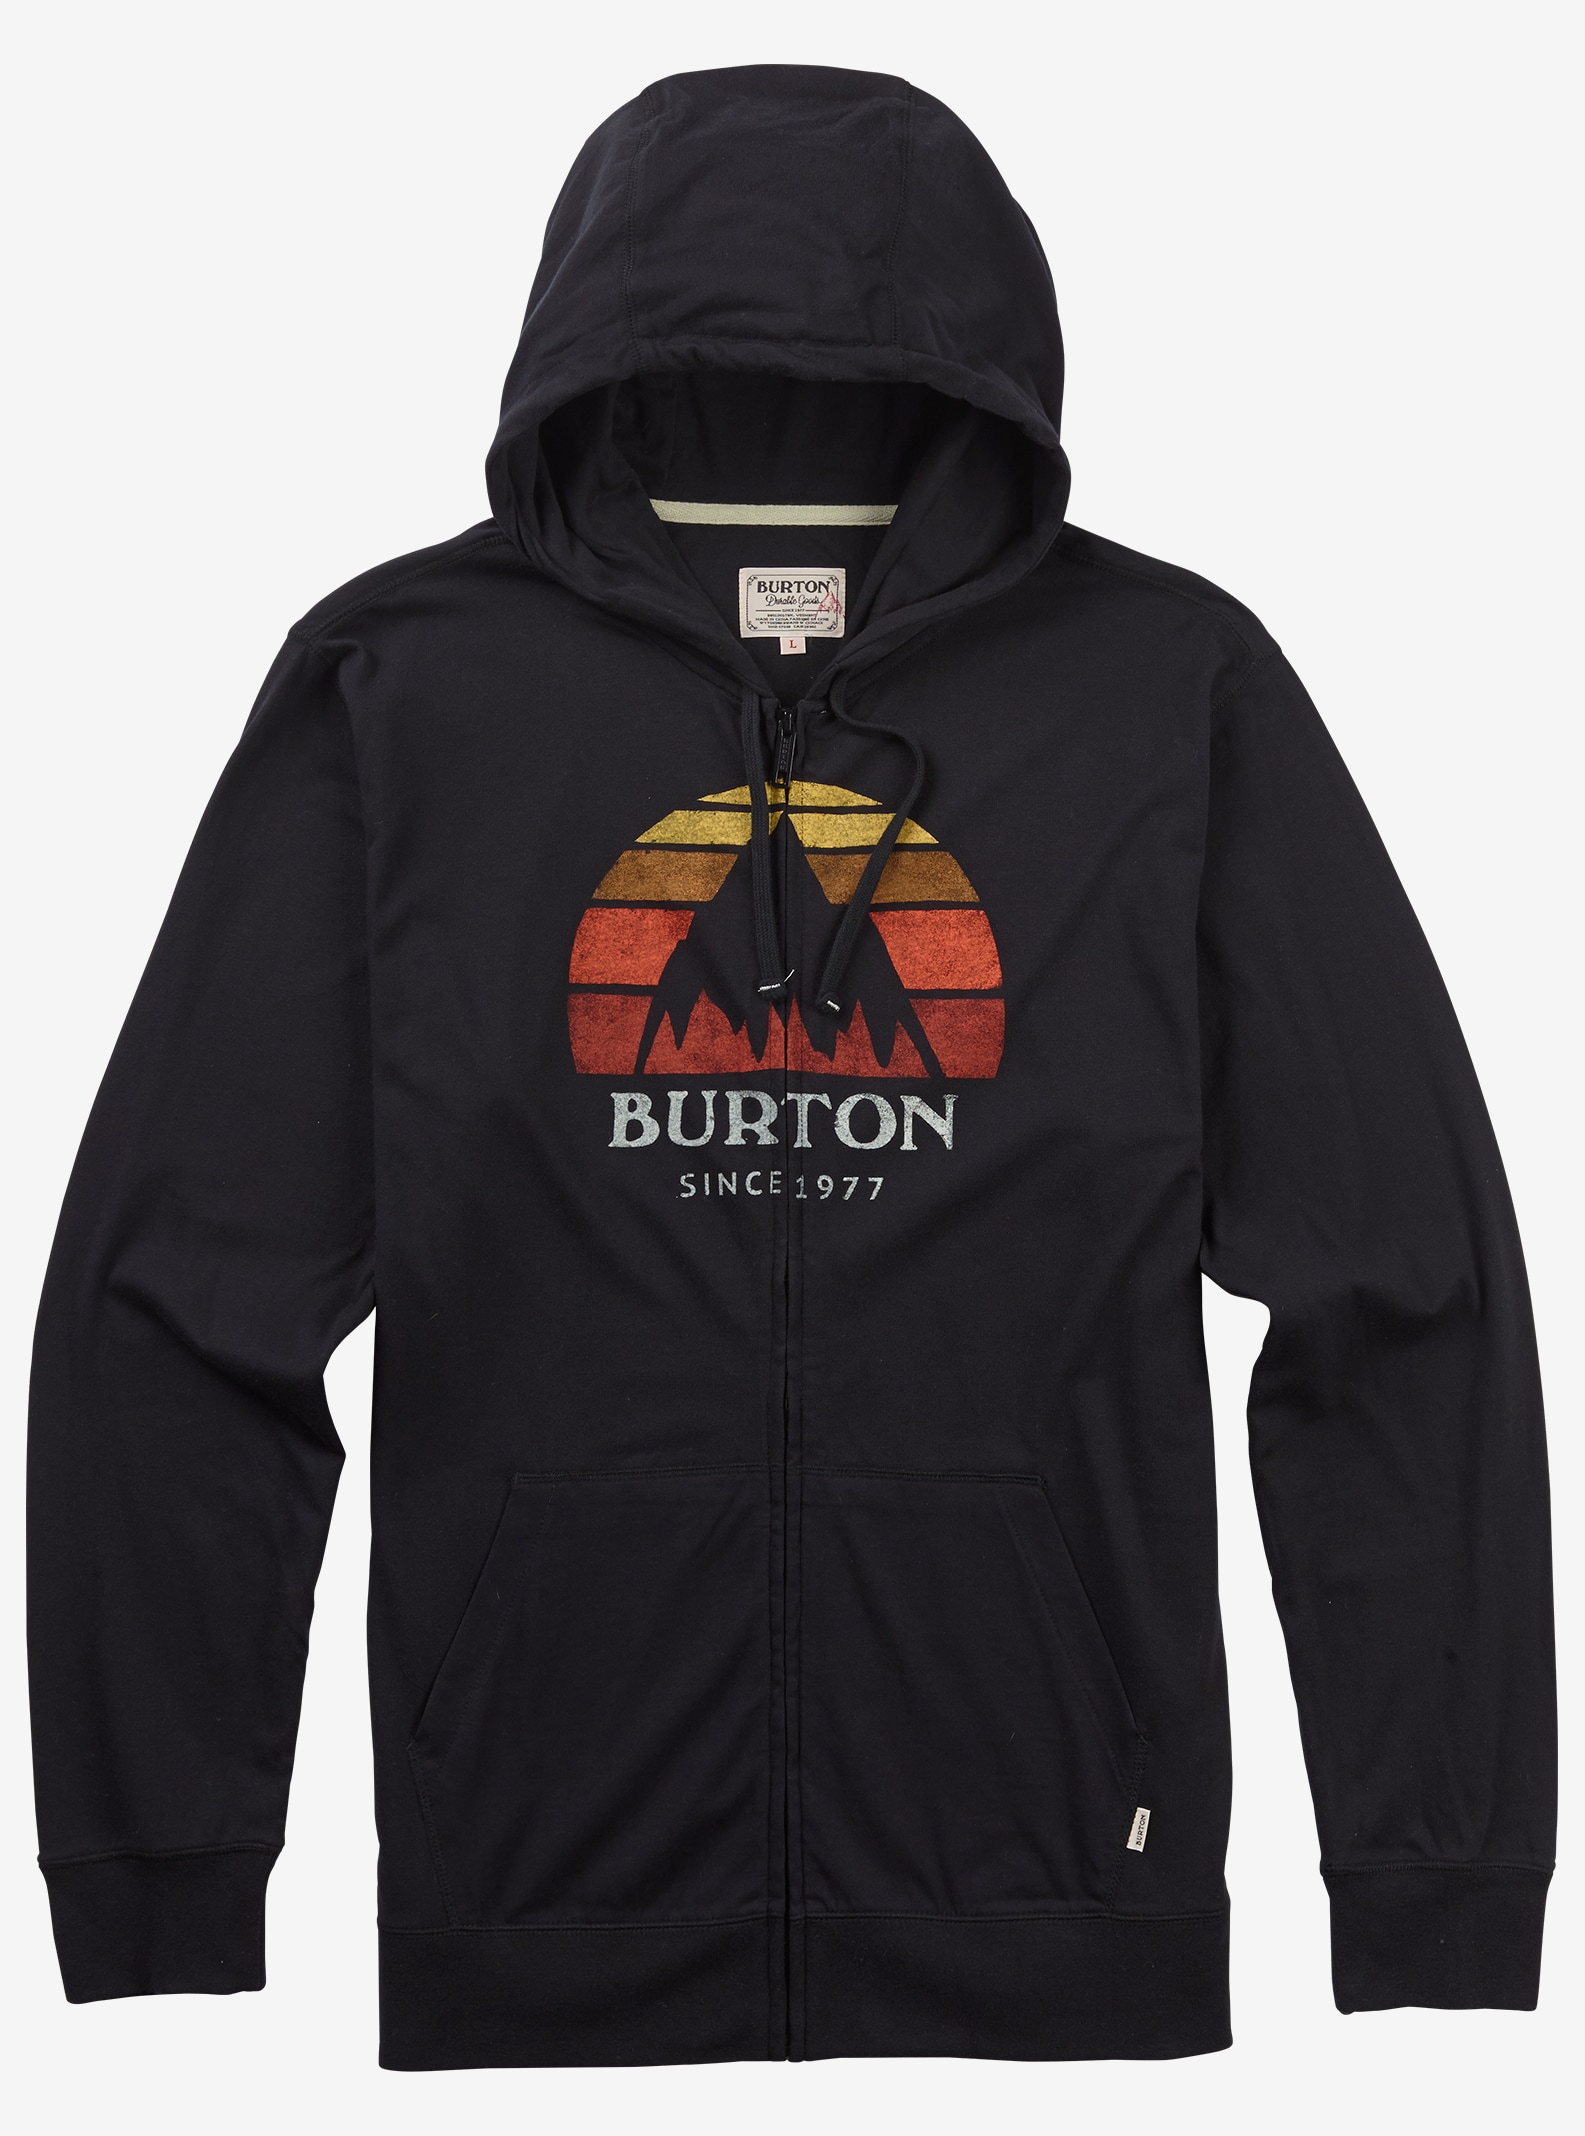 Burton Underhill Logo Full-Zip Hoodie shown in True Black